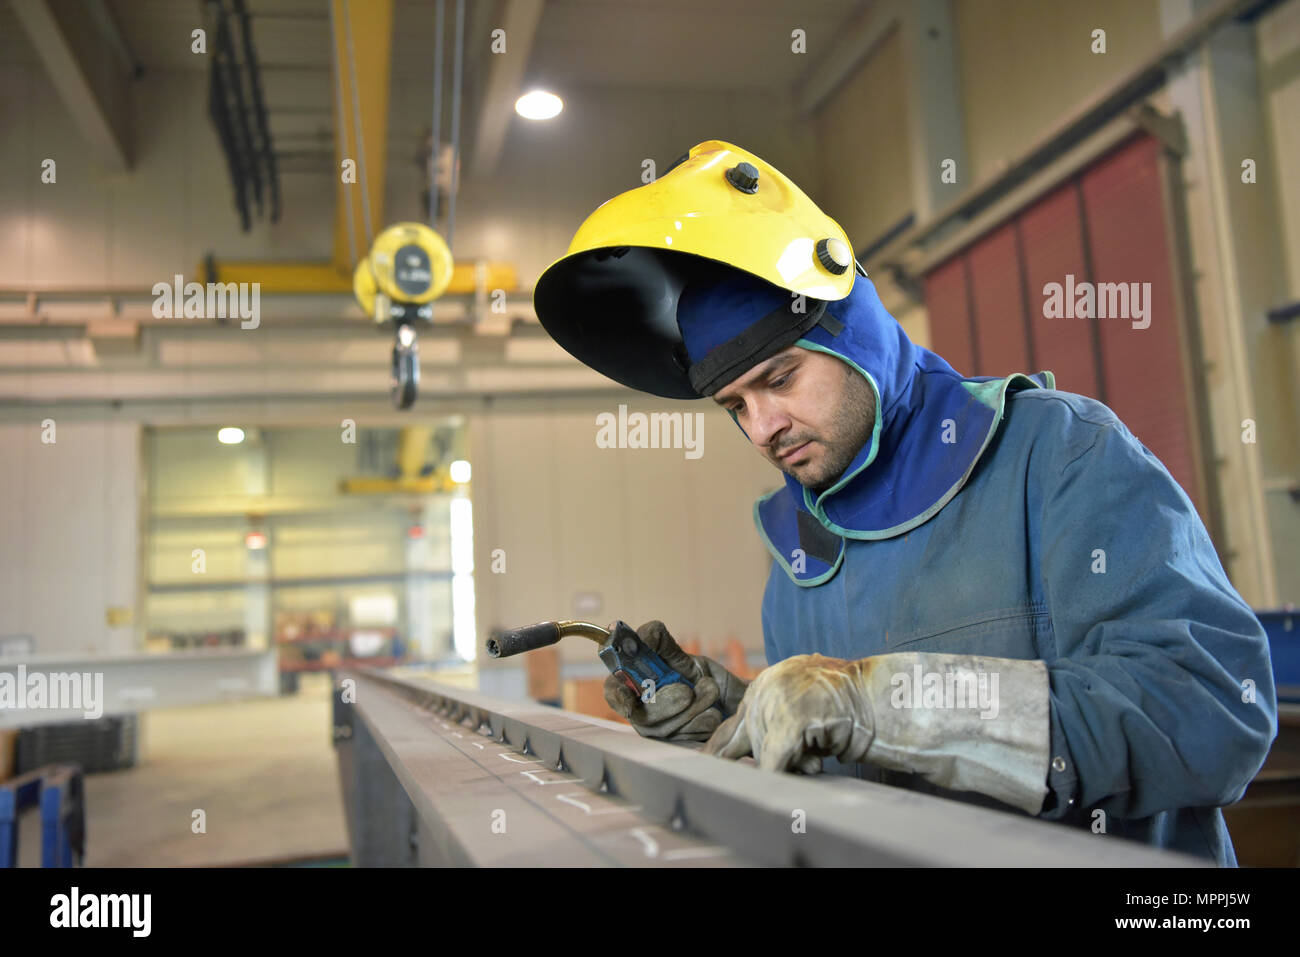 Welder checking metal surface in factory - Stock Image